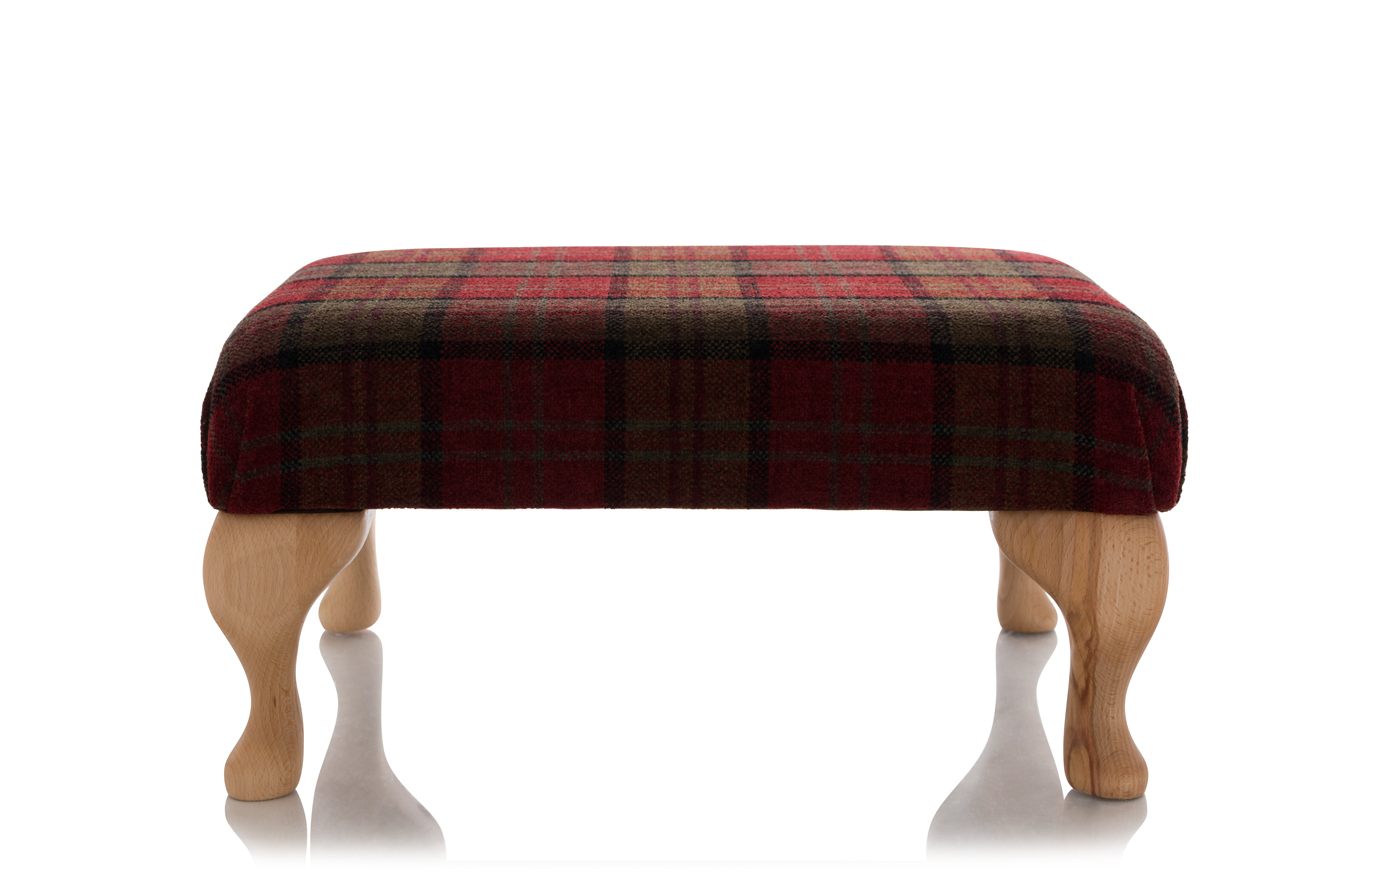 New Footstool Queen Anne Ottoman Red Tartan Check Fabric